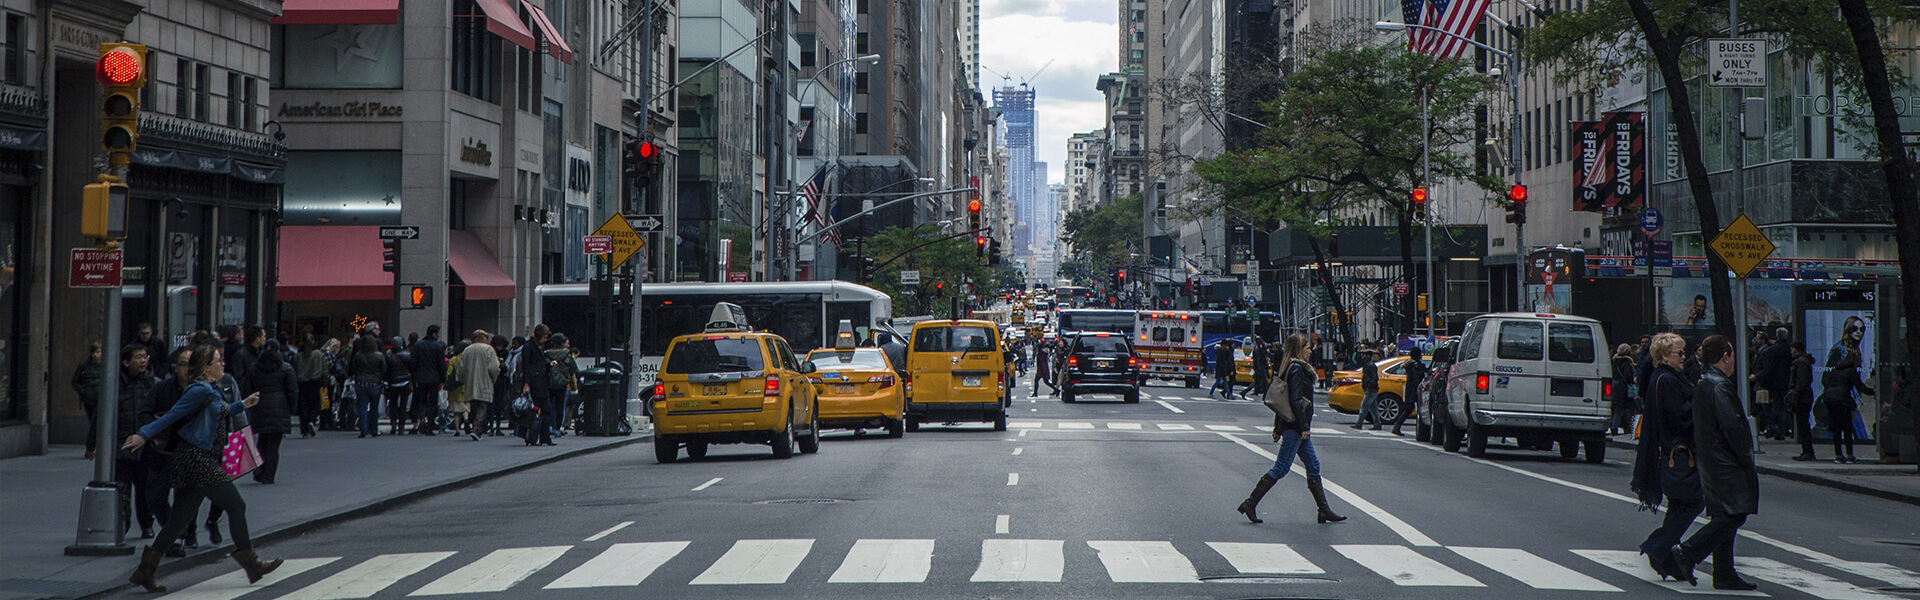 Photo from New York City street level people crossing the road yellow taxis